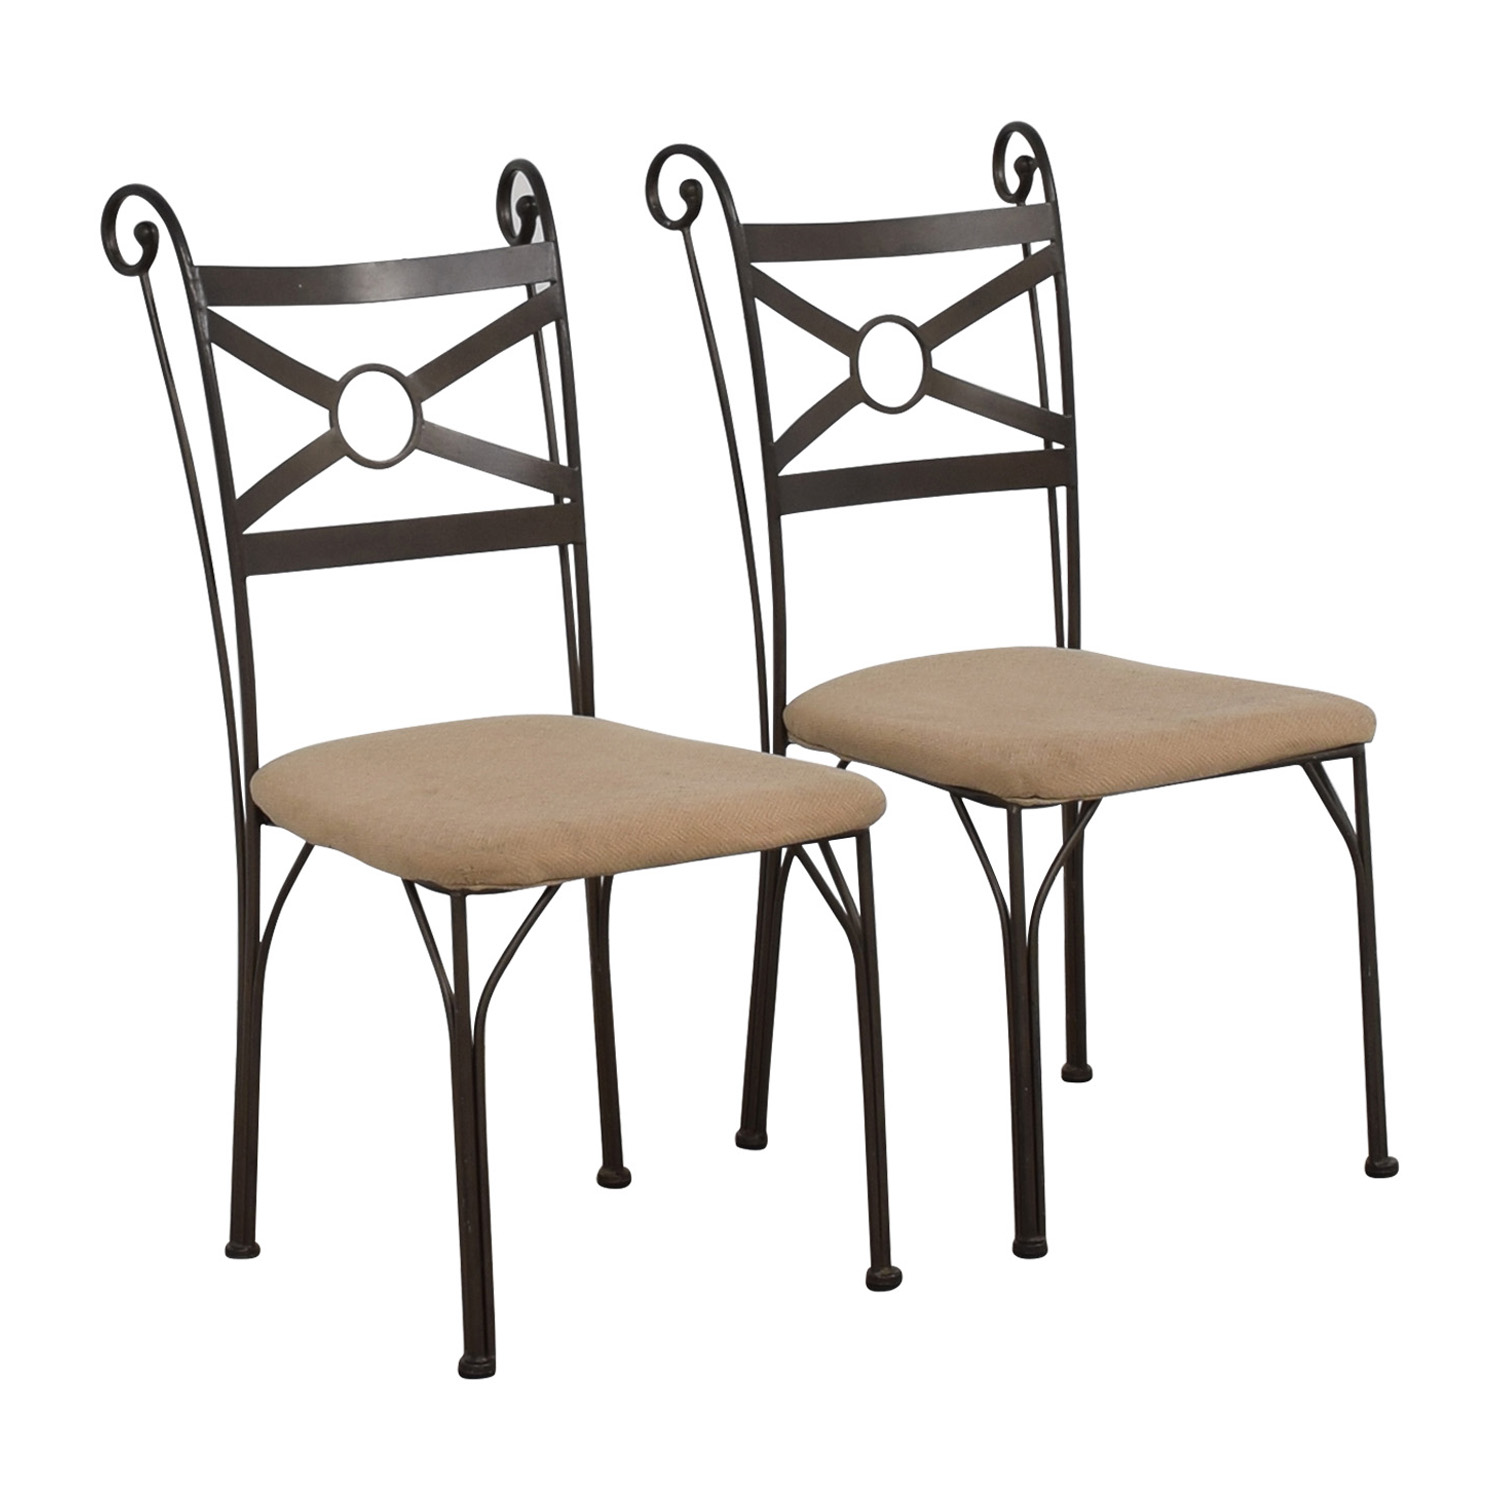 Fabric and Metal Chairs used